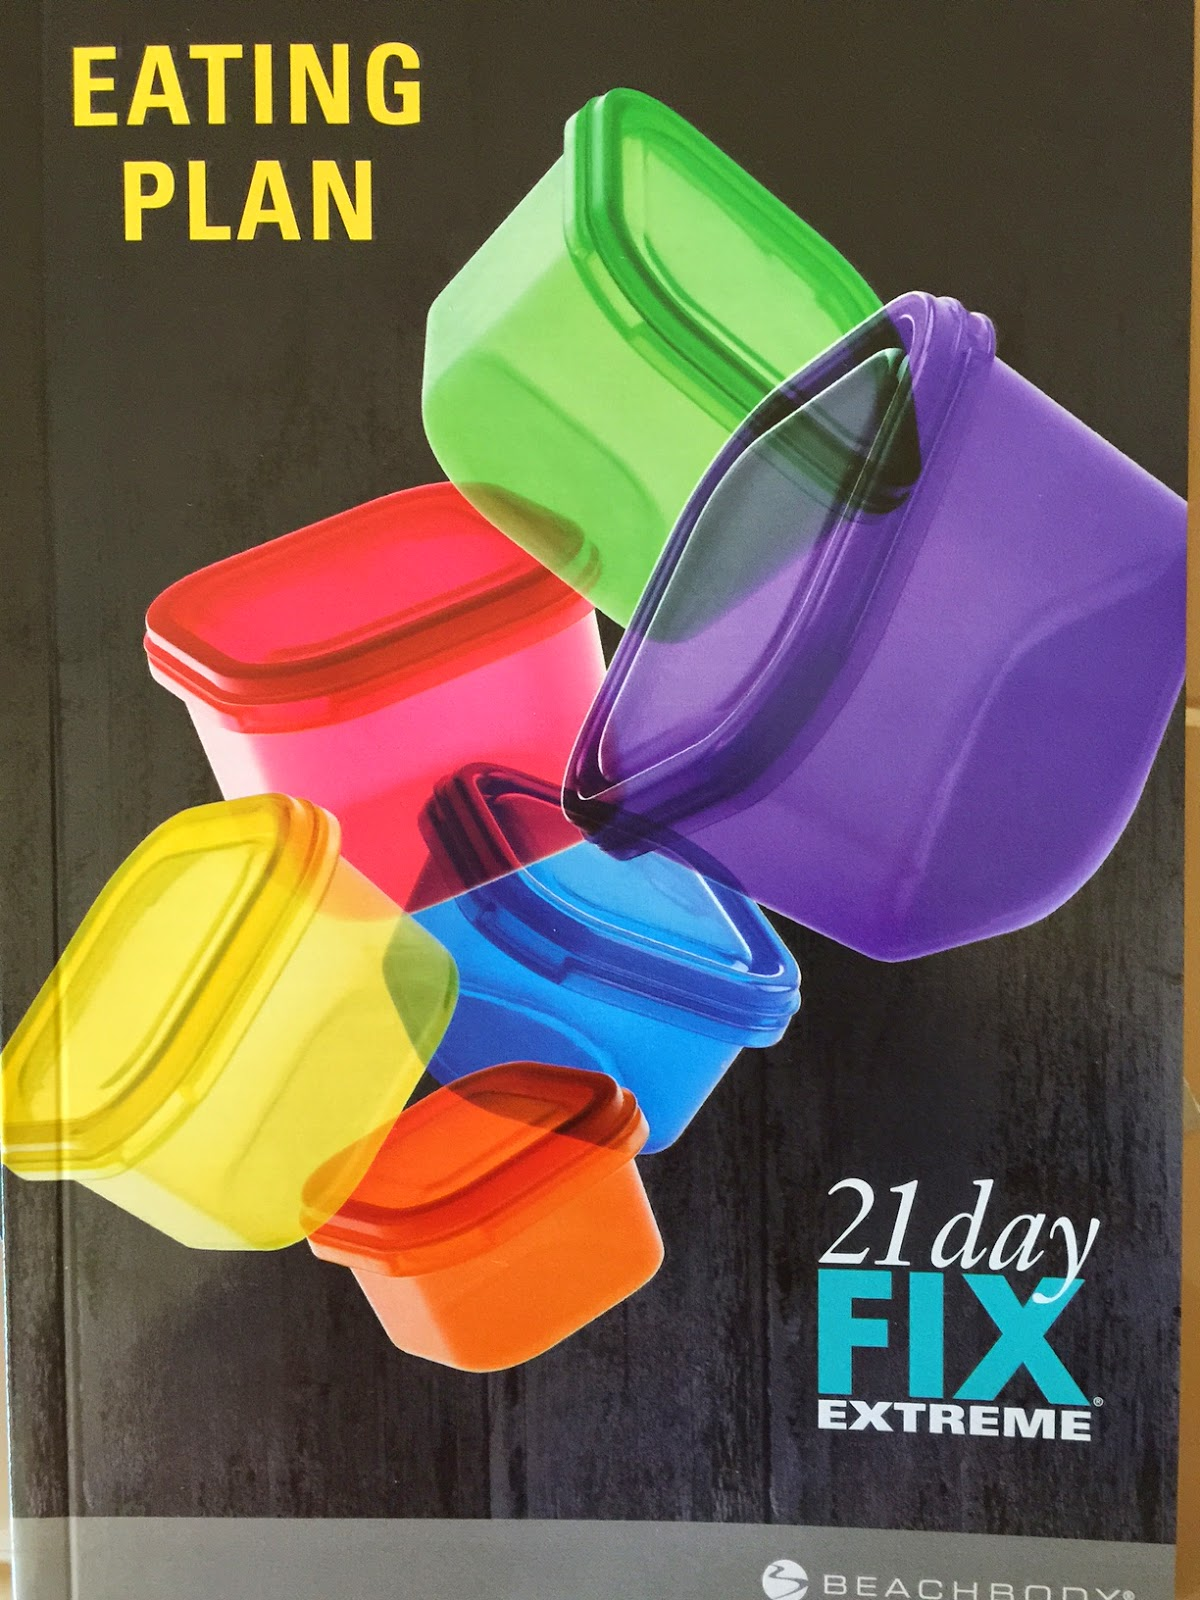 21 Day Fix Extreme Meal Plan, 21 Day Fix Extreme Support and Accountability Group, www.HealthyFitFocused.com